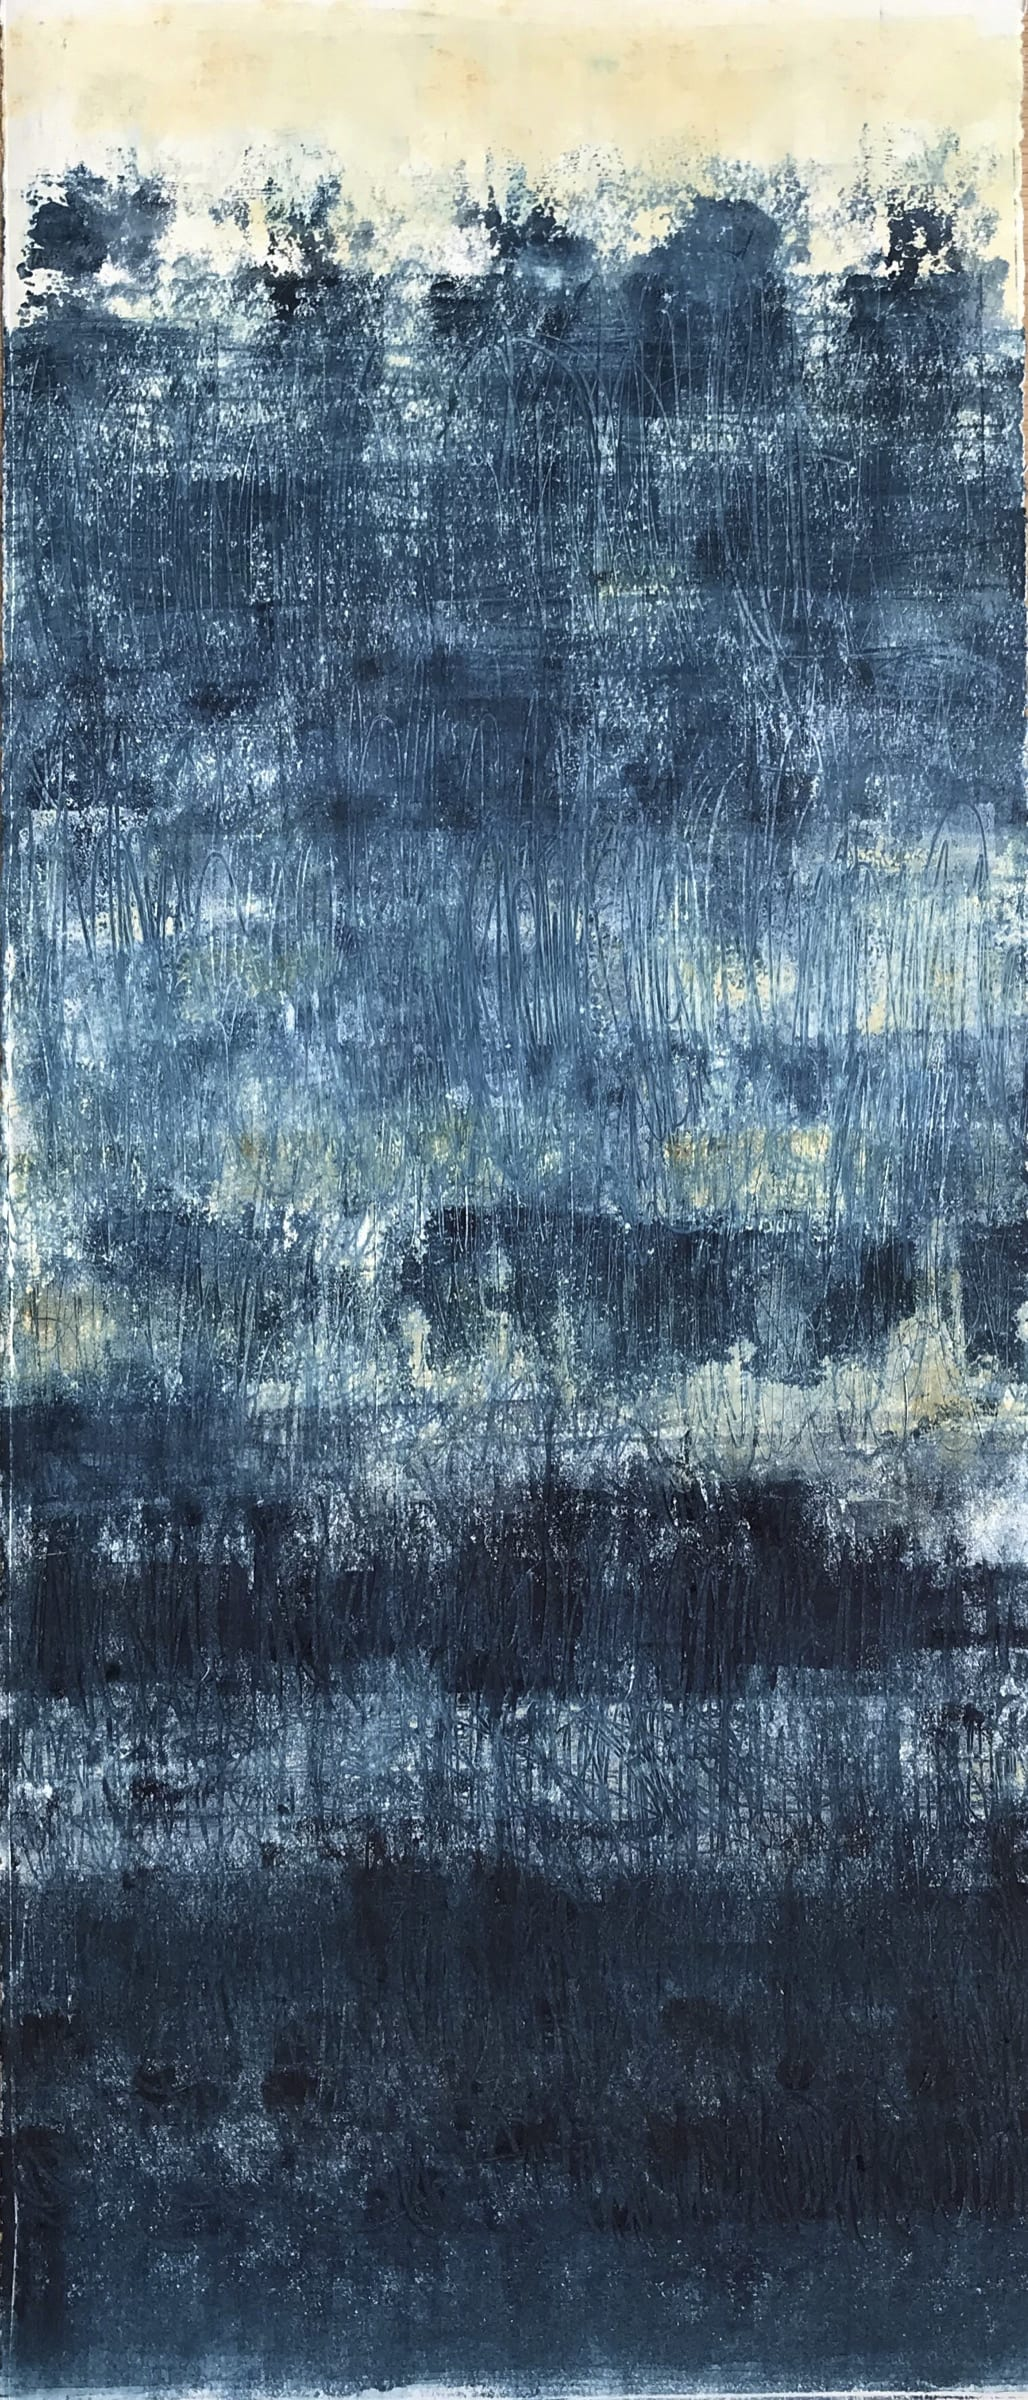 """<span class=""""link fancybox-details-link""""><a href=""""/artists/235-suzanne-bethell/works/7381-suzanne-bethell-prussian-blue-6-2020/"""">View Detail Page</a></span><div class=""""artist""""><strong>Suzanne Bethell</strong></div> <div class=""""title""""><em>Prussian Blue 6</em>, 2020</div> <div class=""""medium"""">Monotype</div> <div class=""""dimensions"""">h. 59 cm x w. 25 cm (paper size)</div> <div class=""""edition_details"""">1/1</div><div class=""""price"""">£450.00</div><div class=""""copyright_line"""">Own Art: £45 x 10 months, 0% APR</div>"""